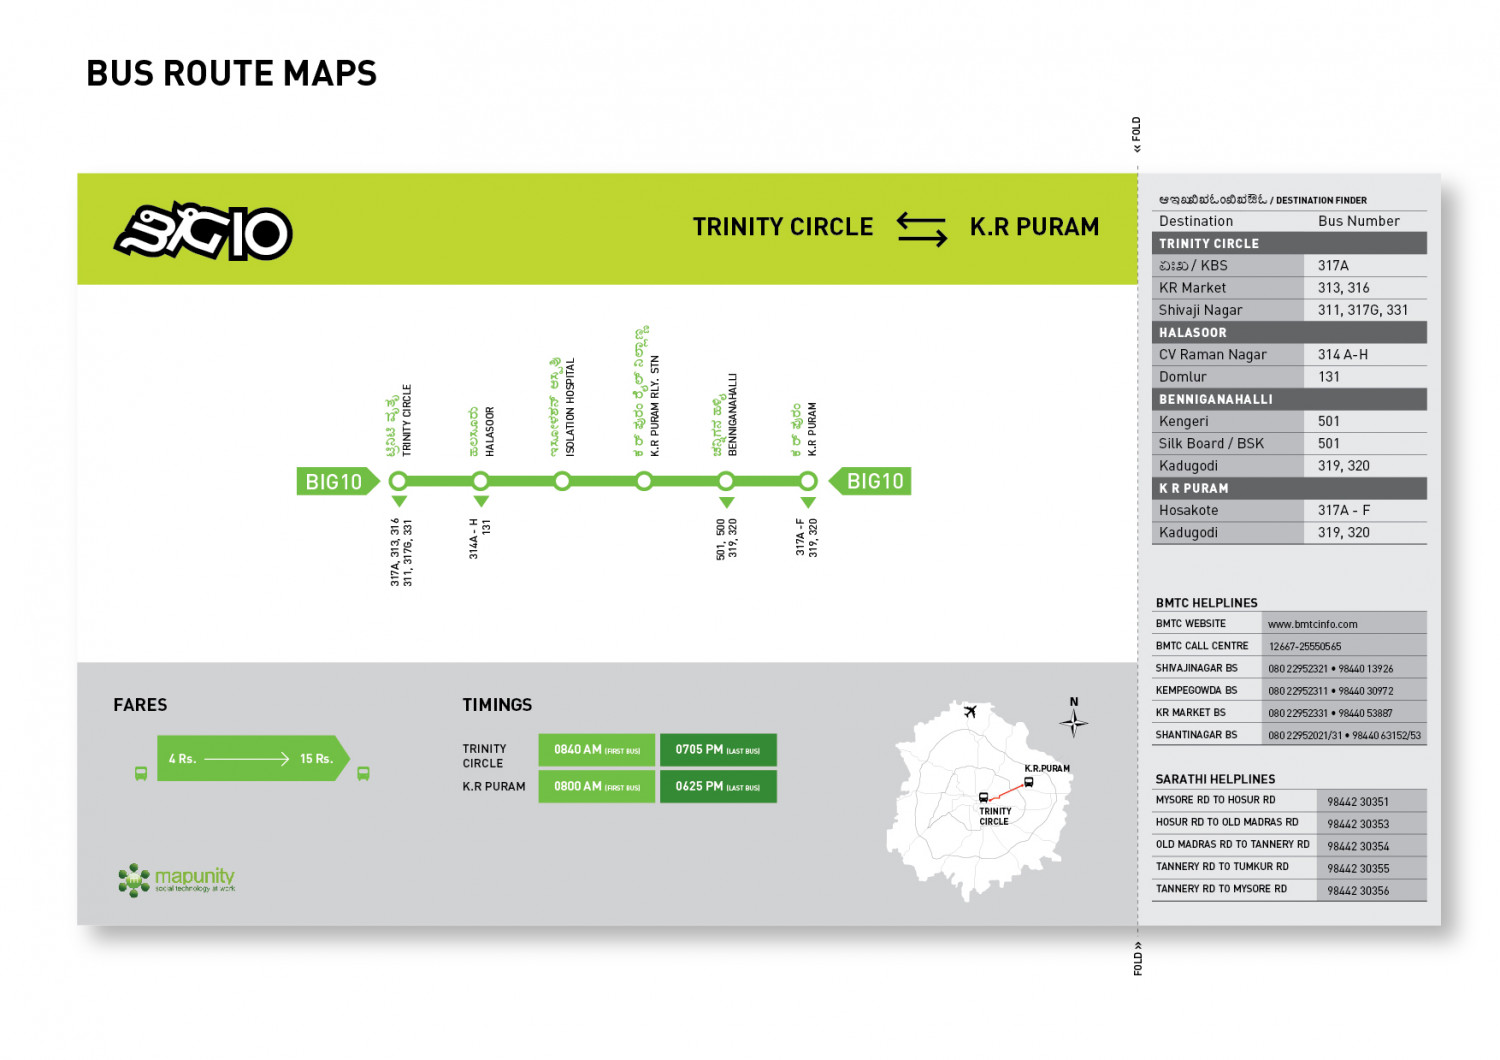 BMTC bus route maps Infographic